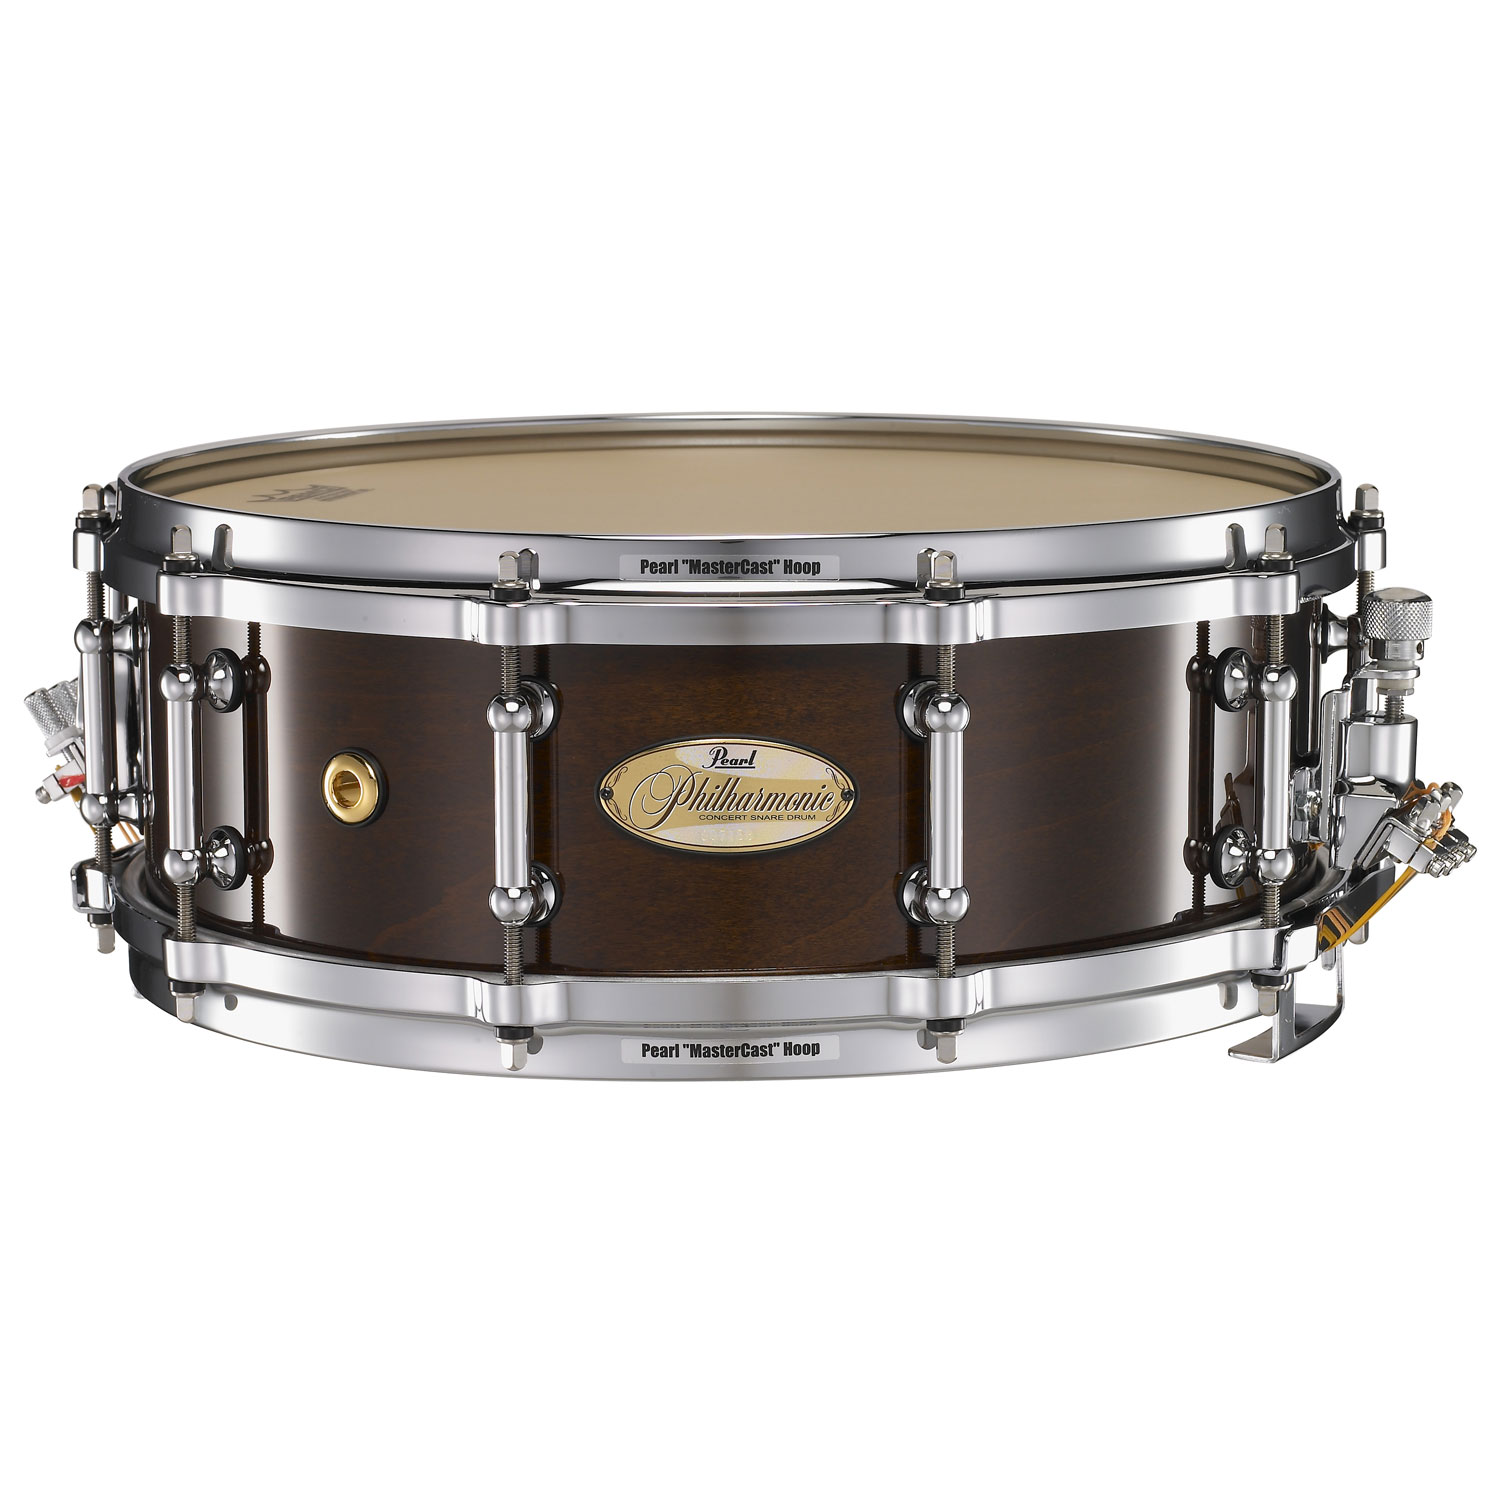 "Pearl 14"" x 5"" Philharmonic Solid Maple Concert Snare Drum in High Gloss Walnut Bordeaux"